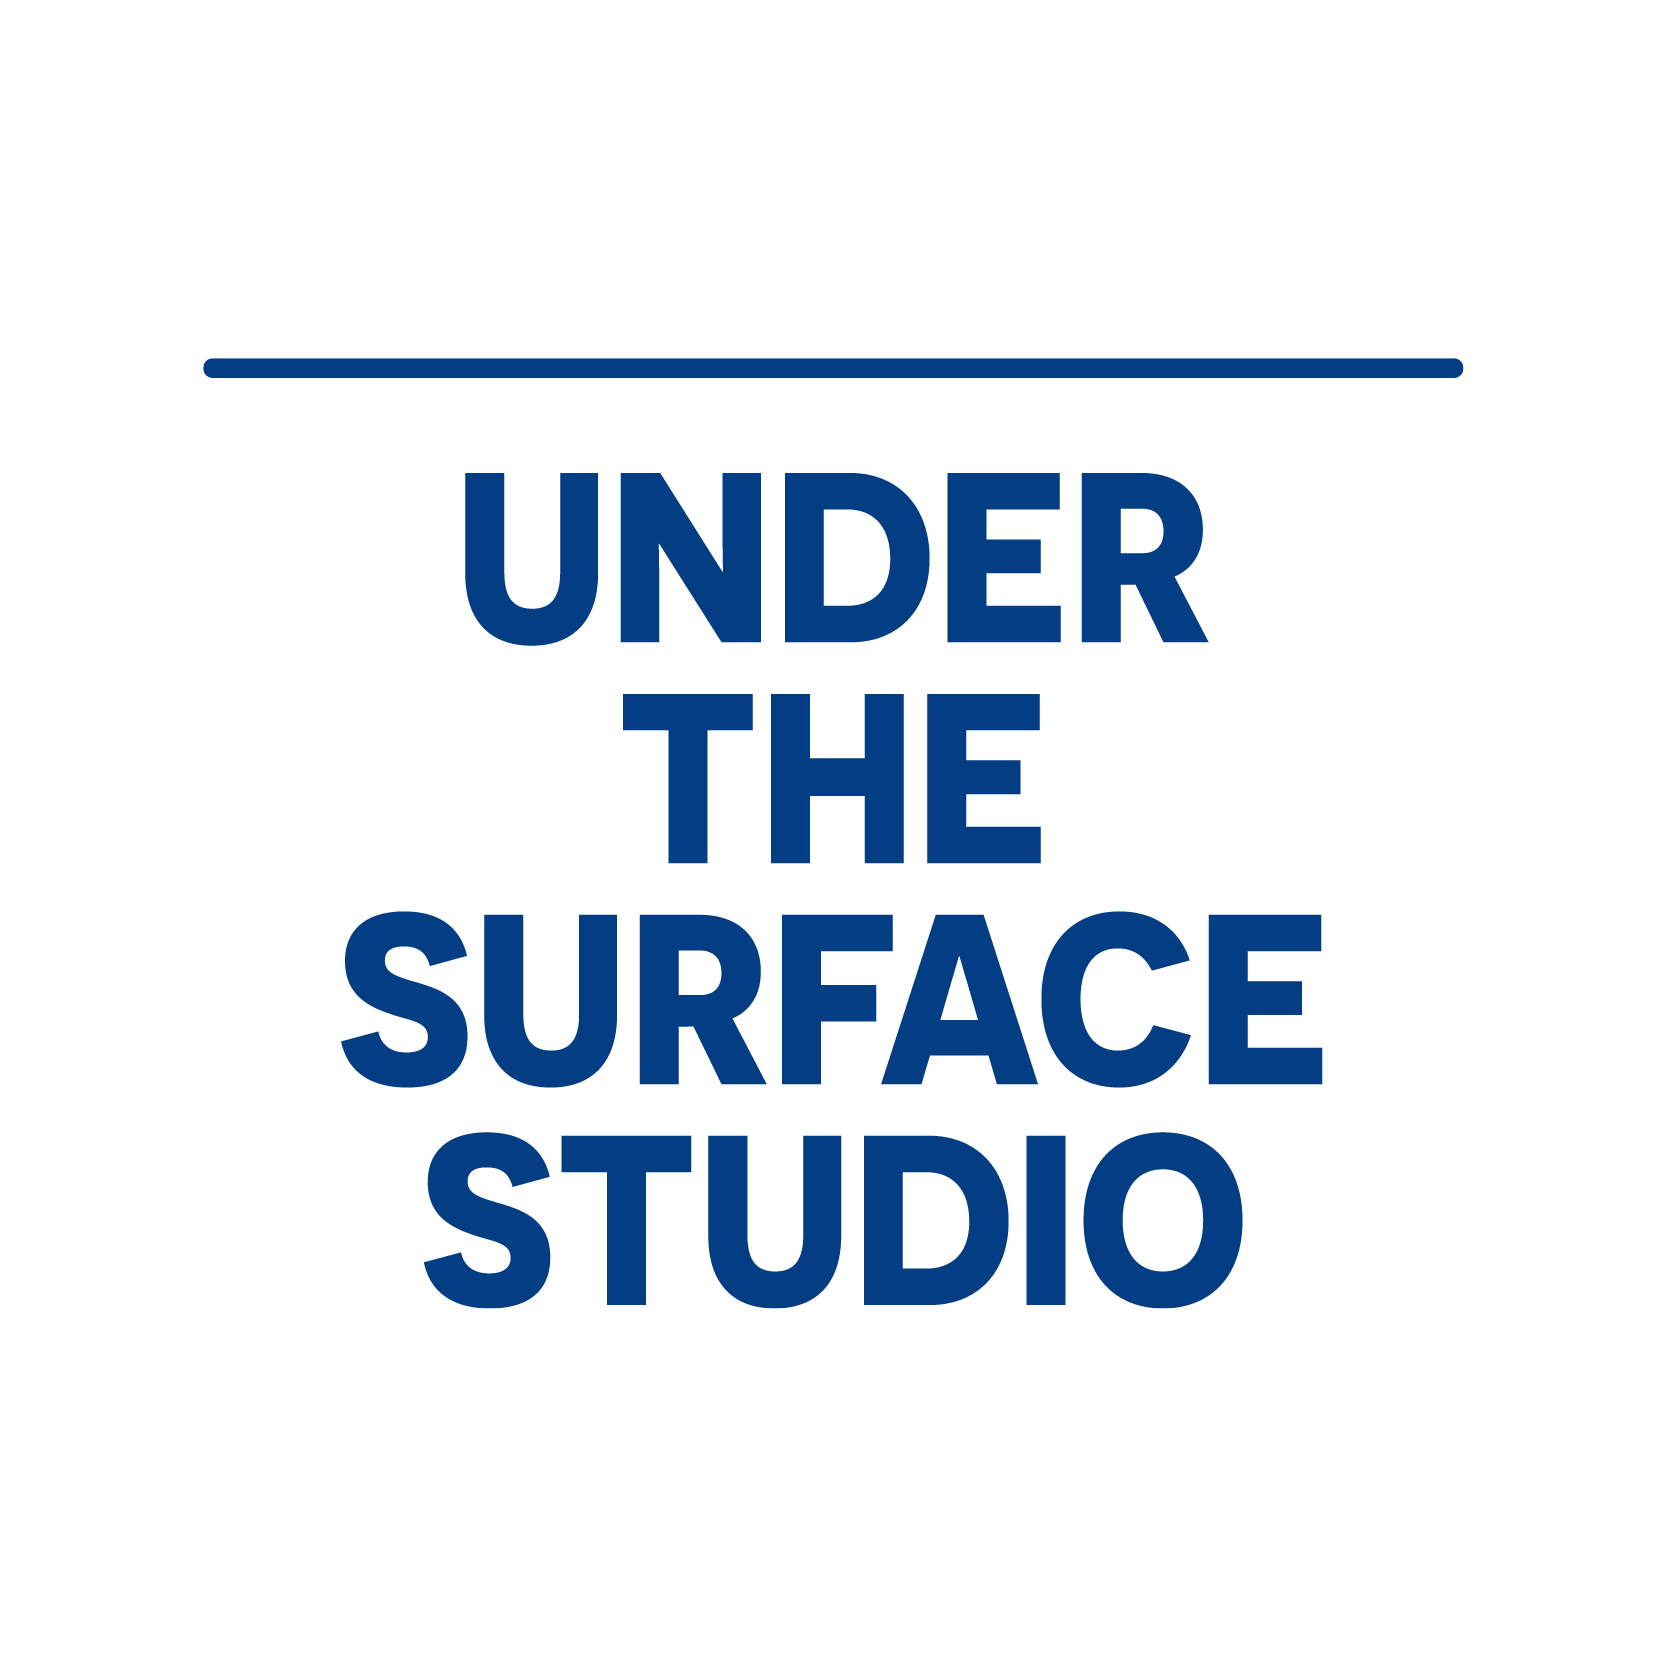 Under The Surface Studio